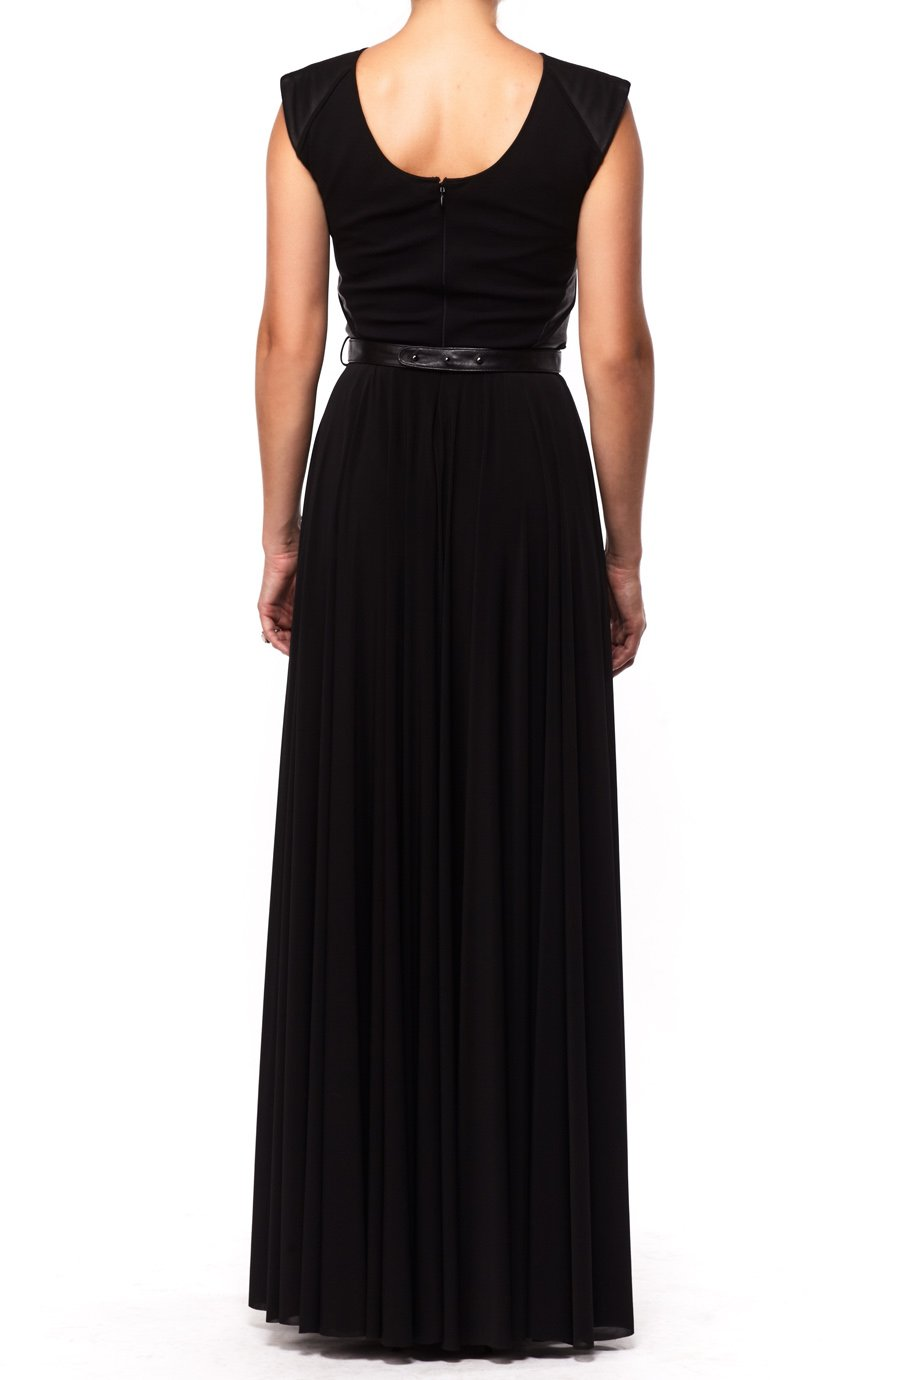 Catherine Deane Black Leather Bustier Belted Silk Gown